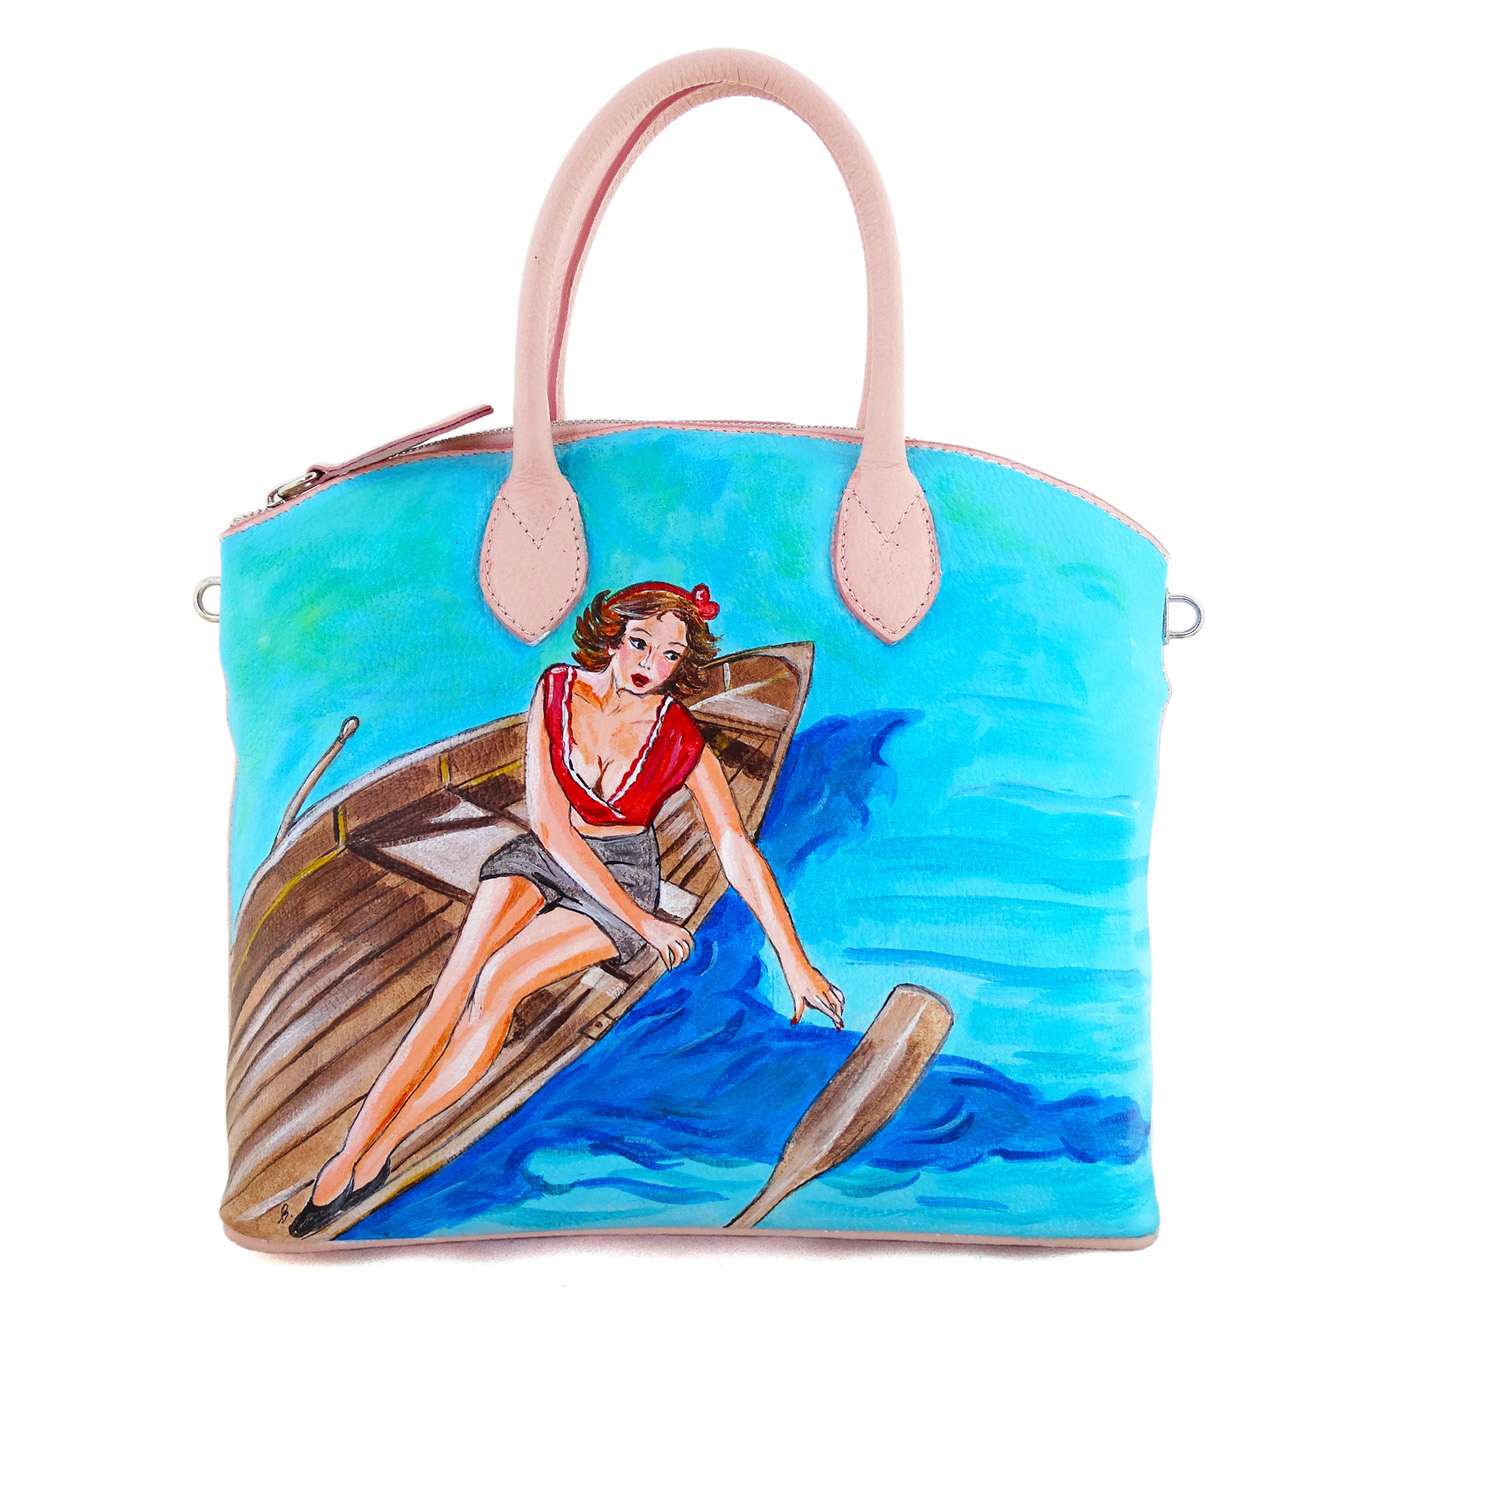 Borsa dipinta a mano – Girl on the boat